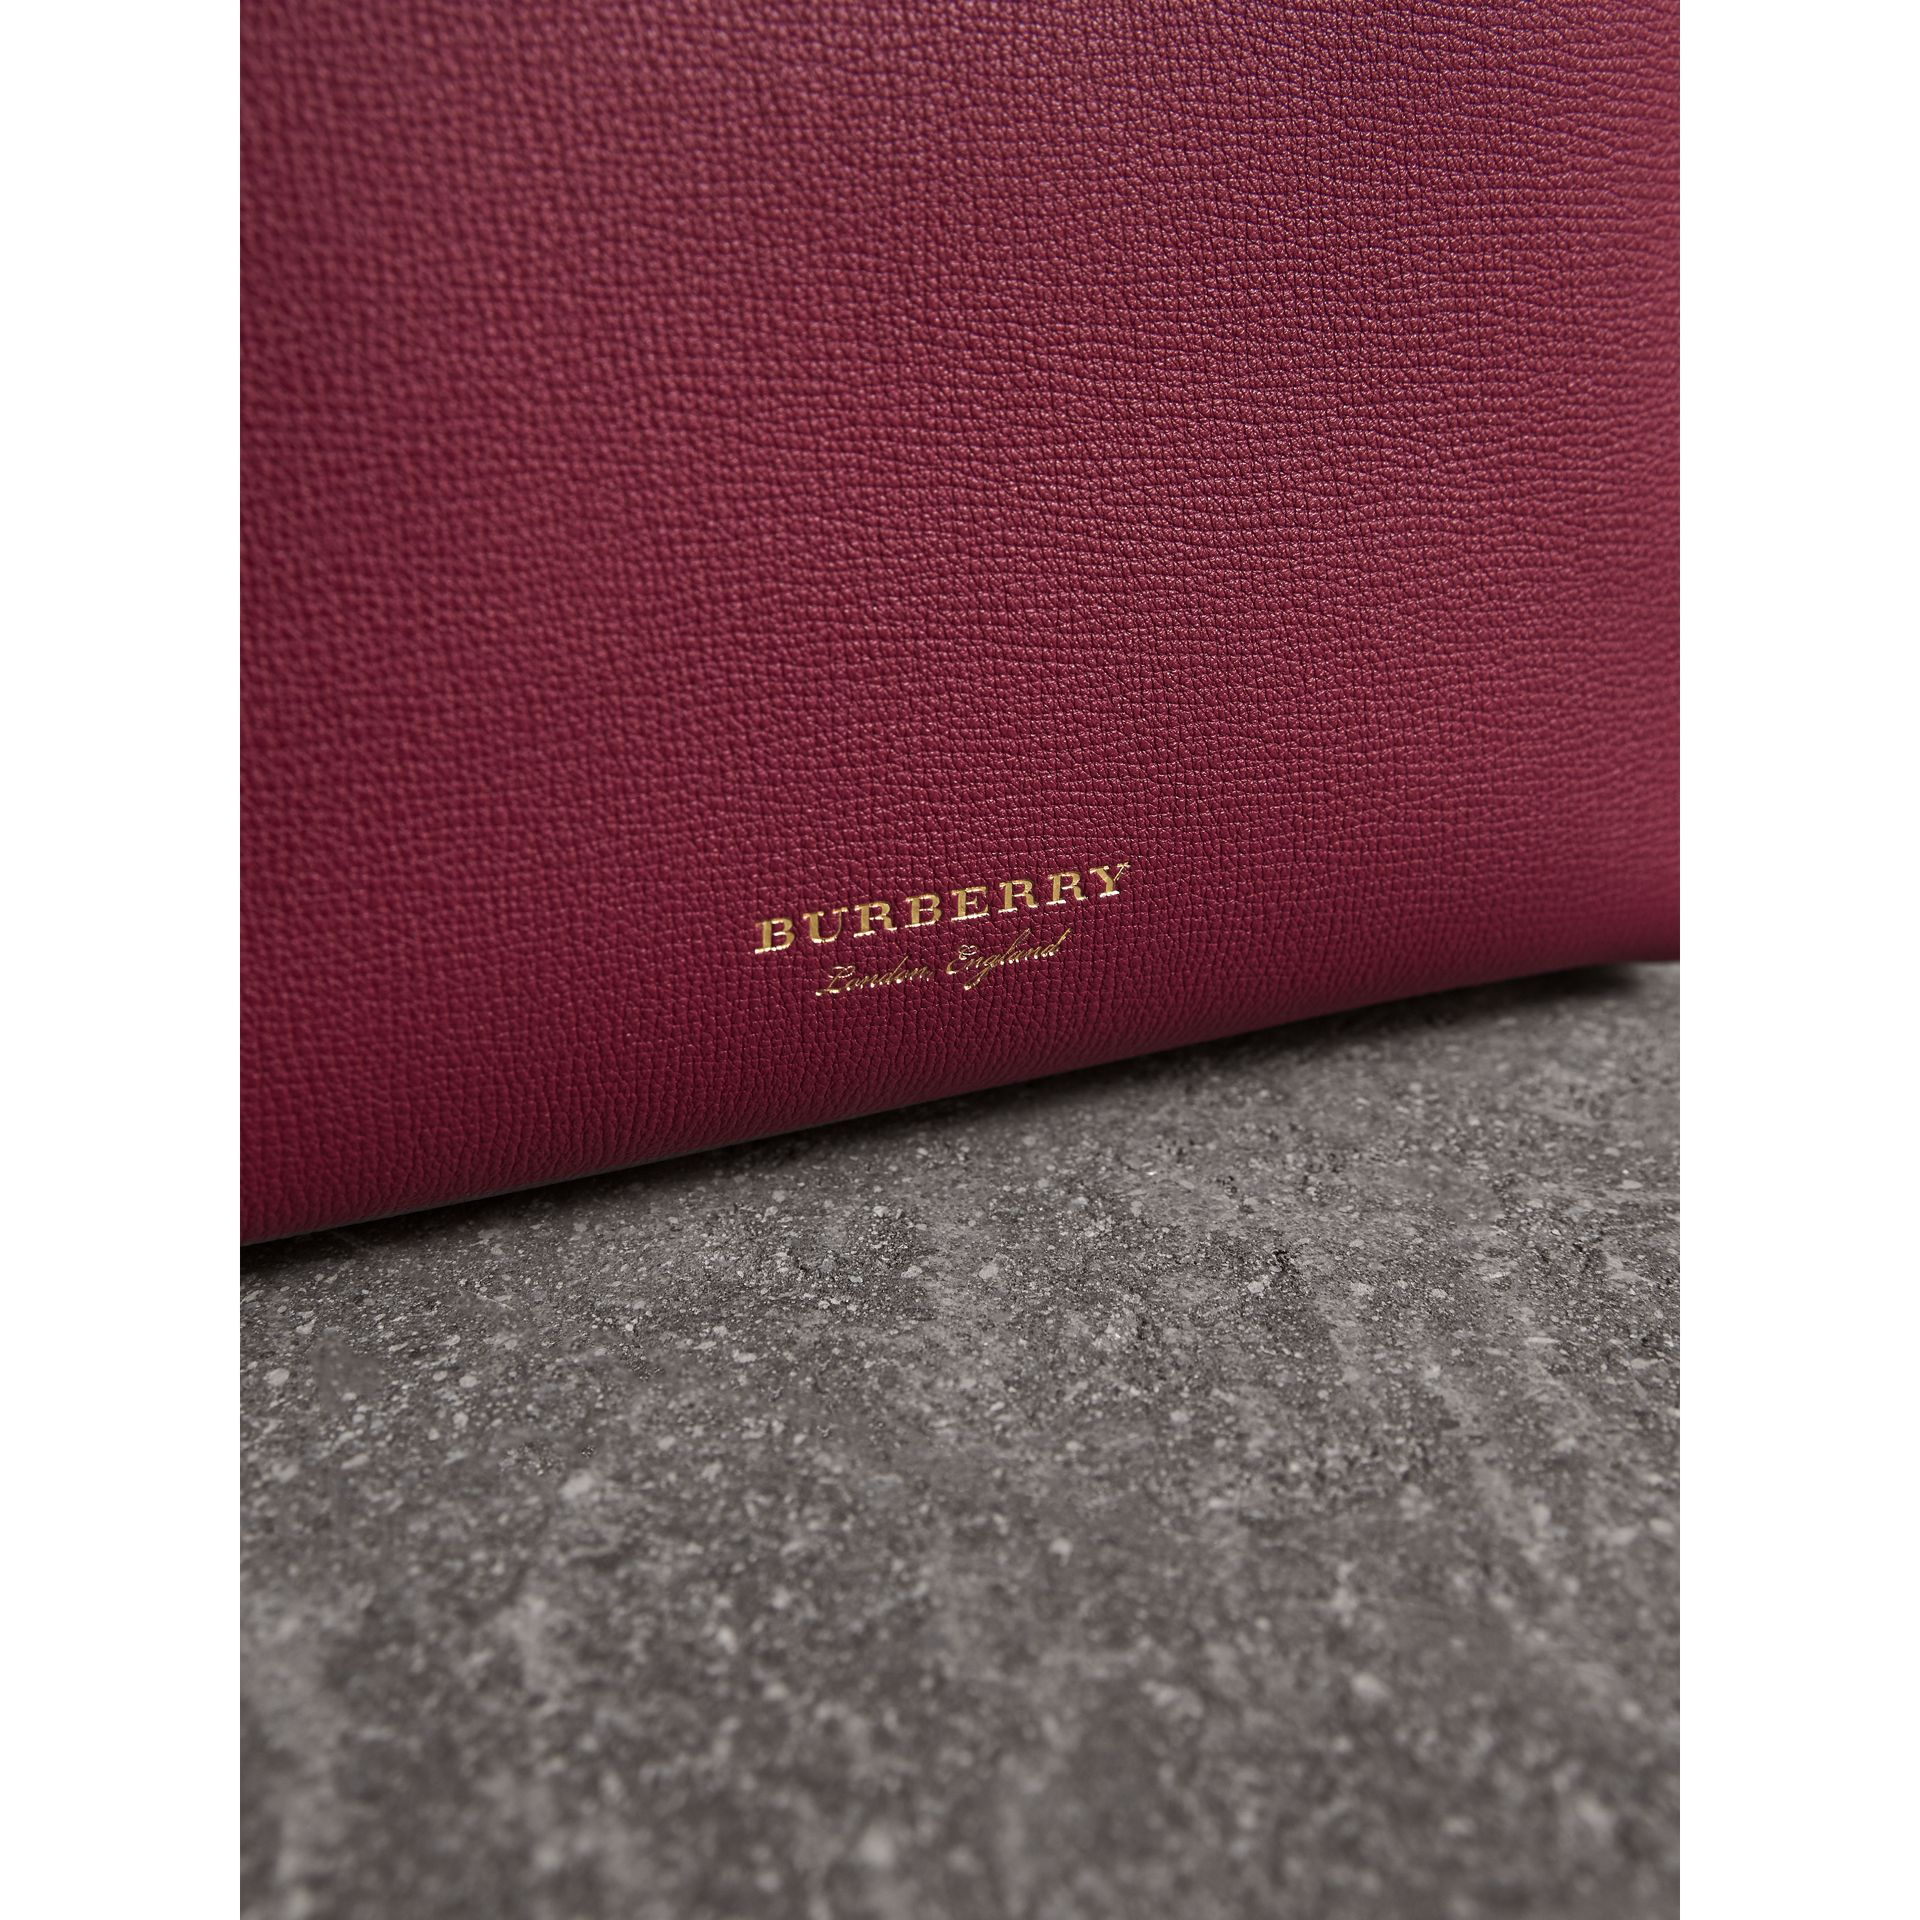 The Small Banner in Two-tone Leather in Berry Pink - Women | Burberry - gallery image 2